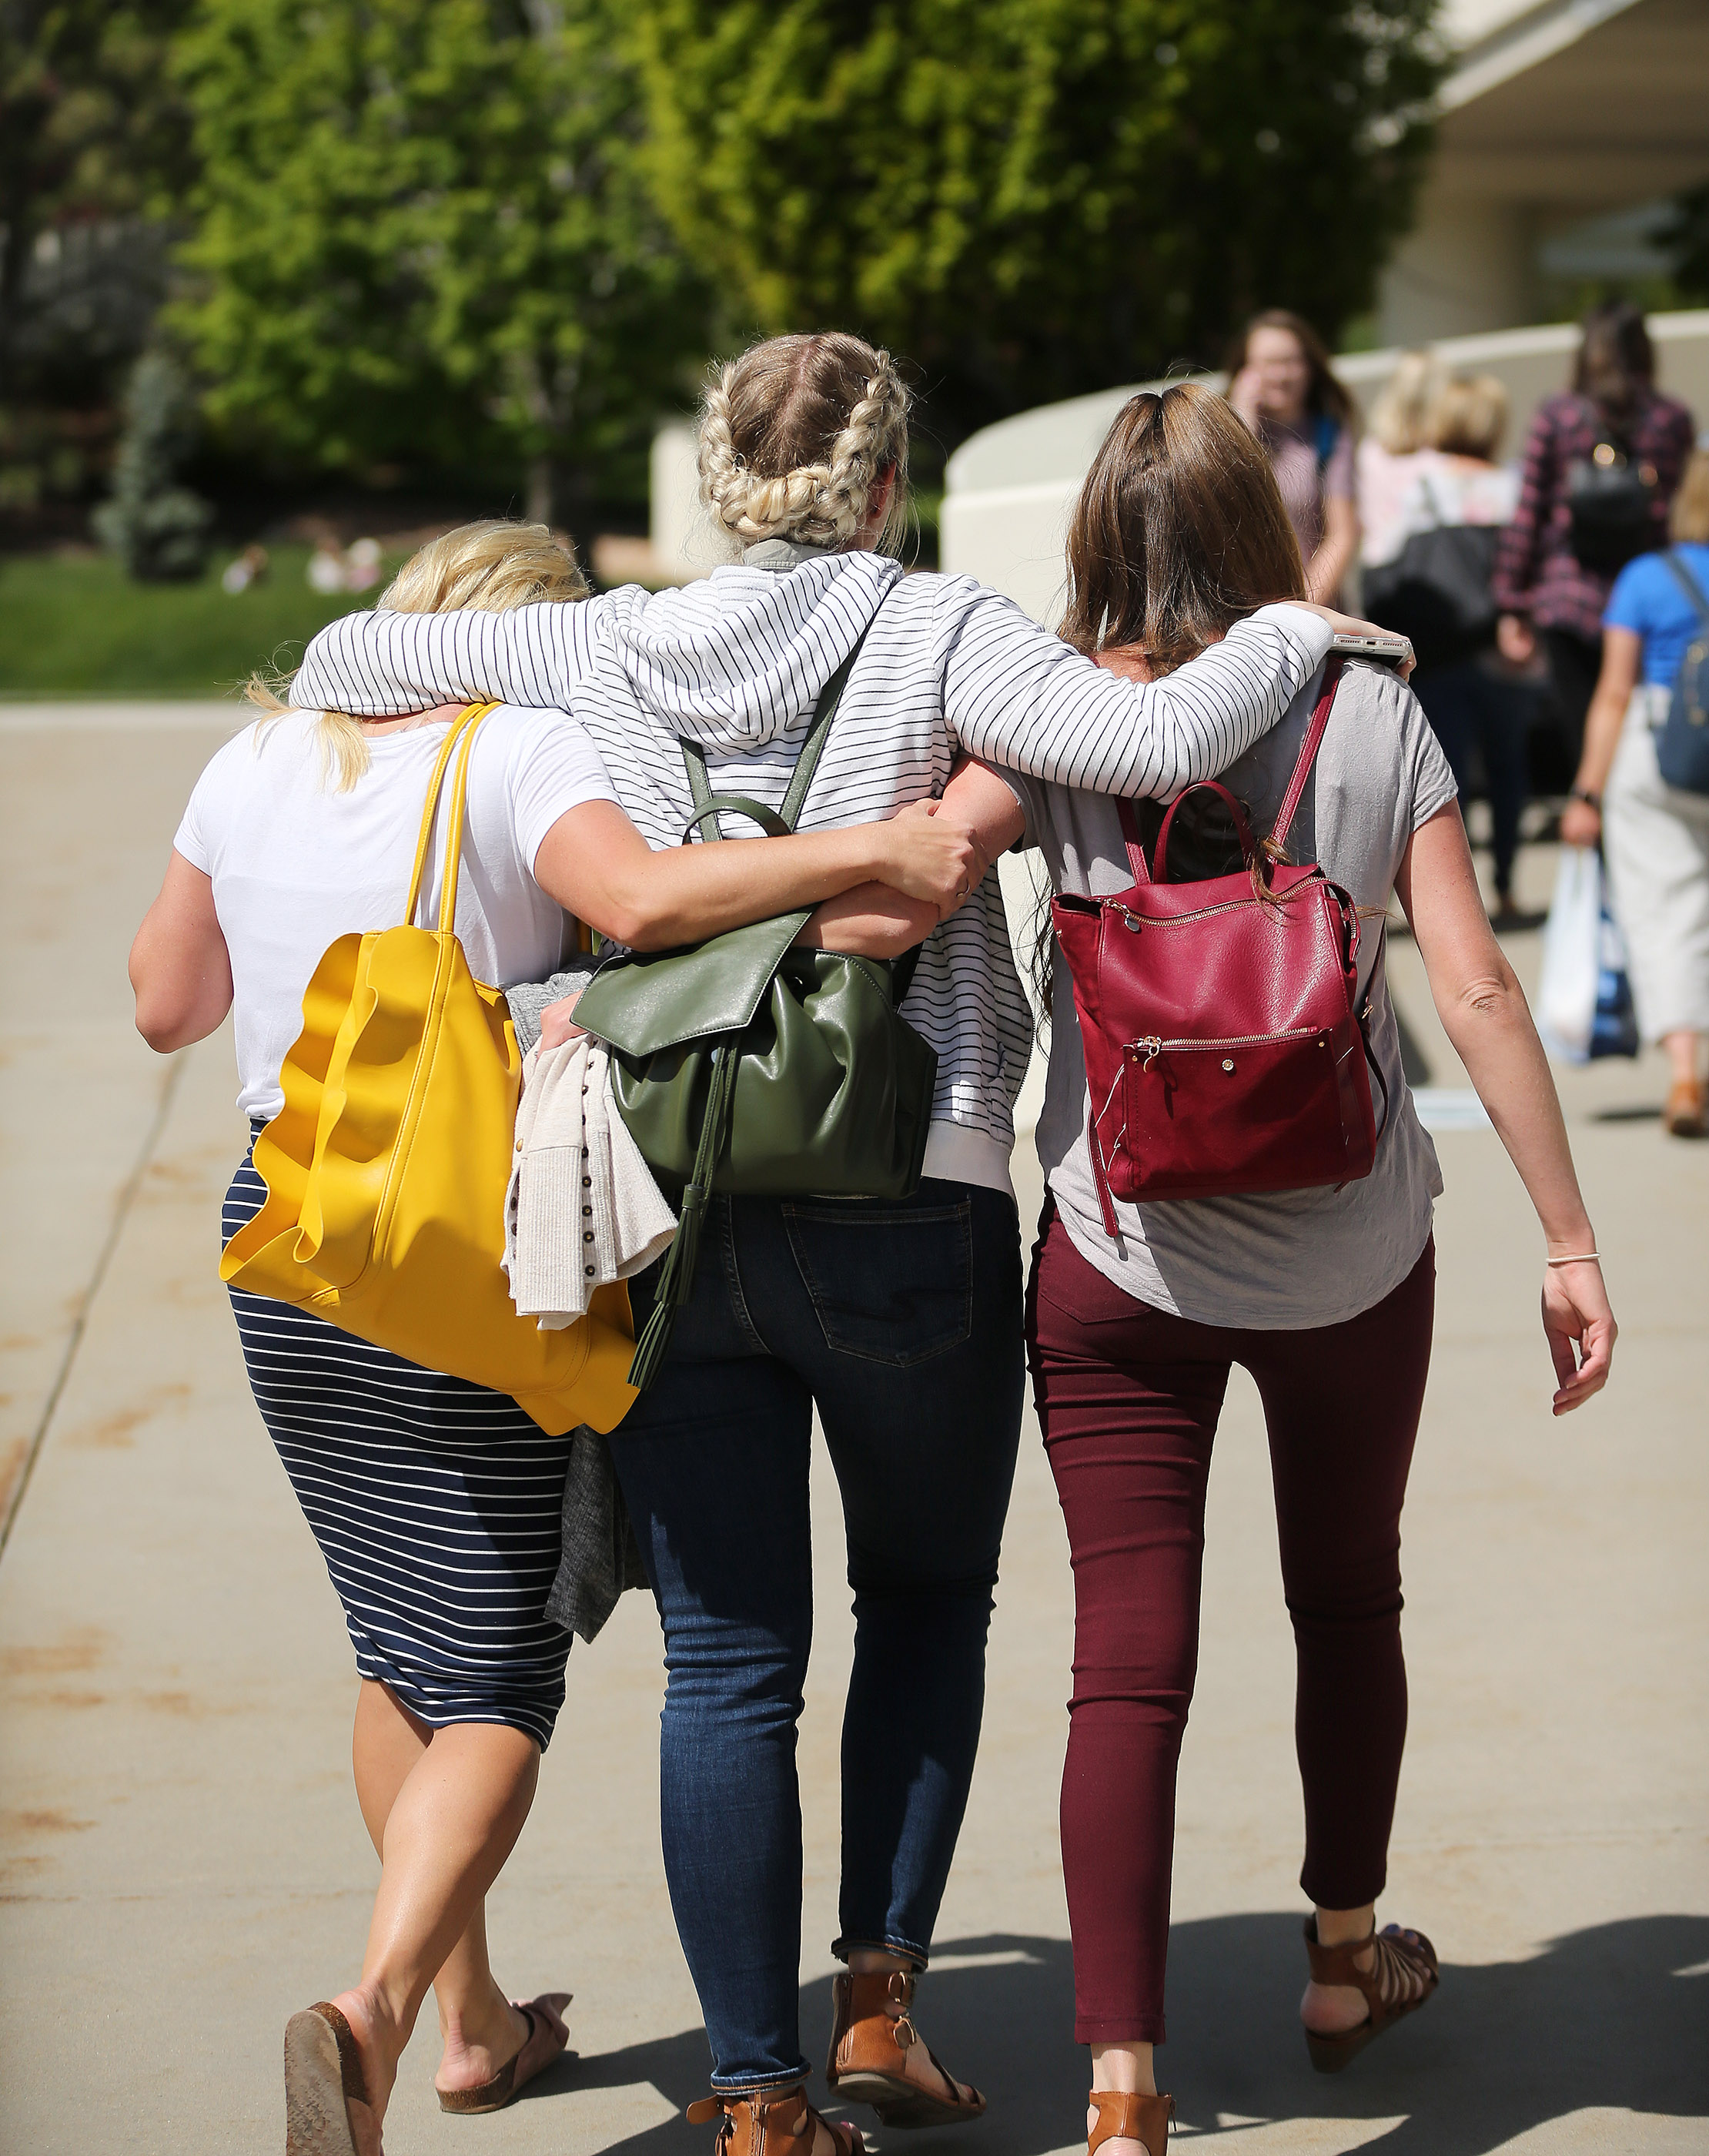 Women walk arm in arm during BYU Women's Conference in Provo on Friday, May 3, 2019.